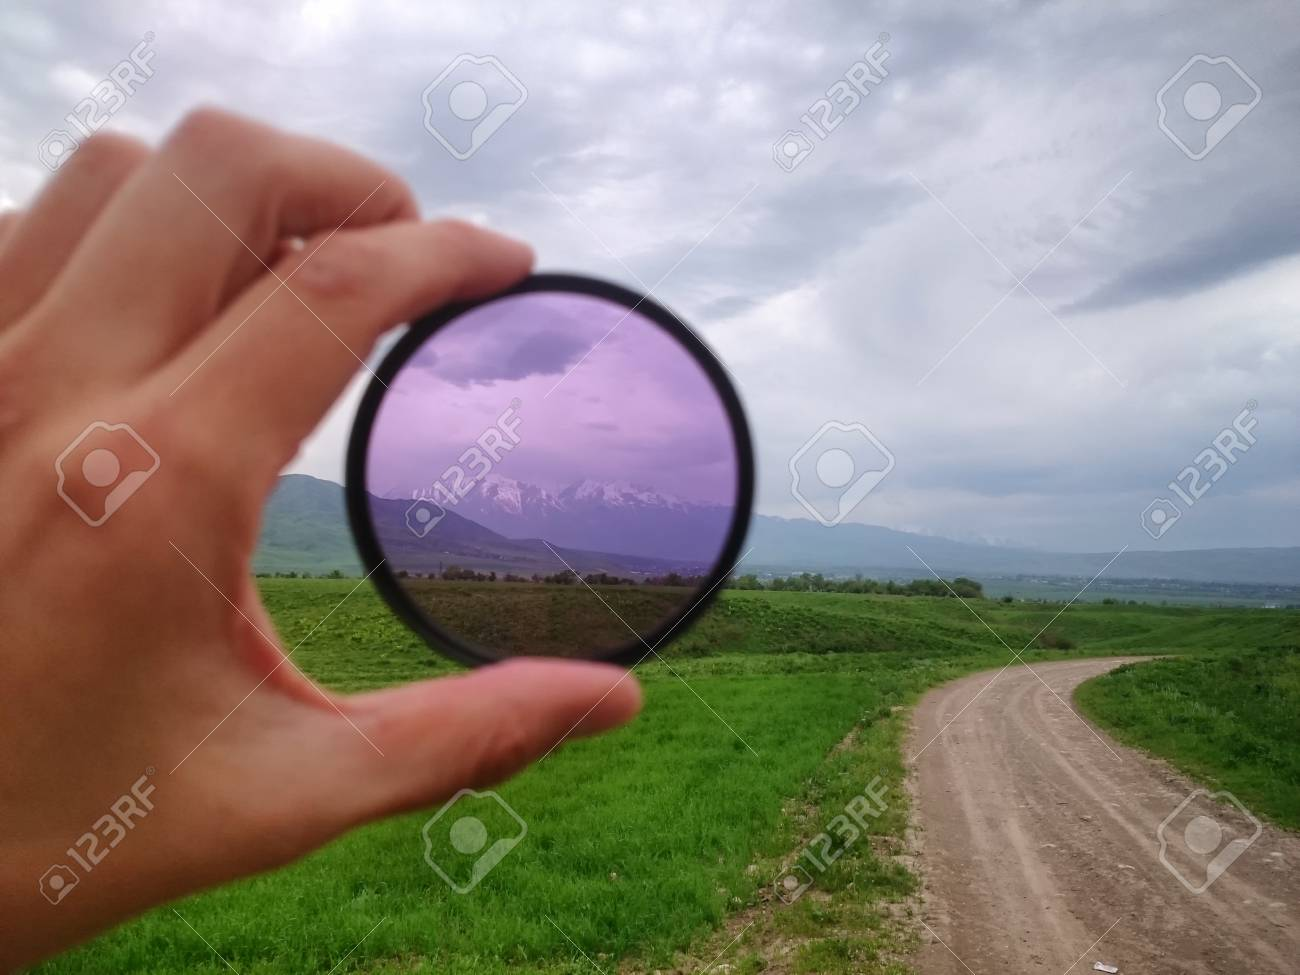 Landscape through a filter in hand - 59116075